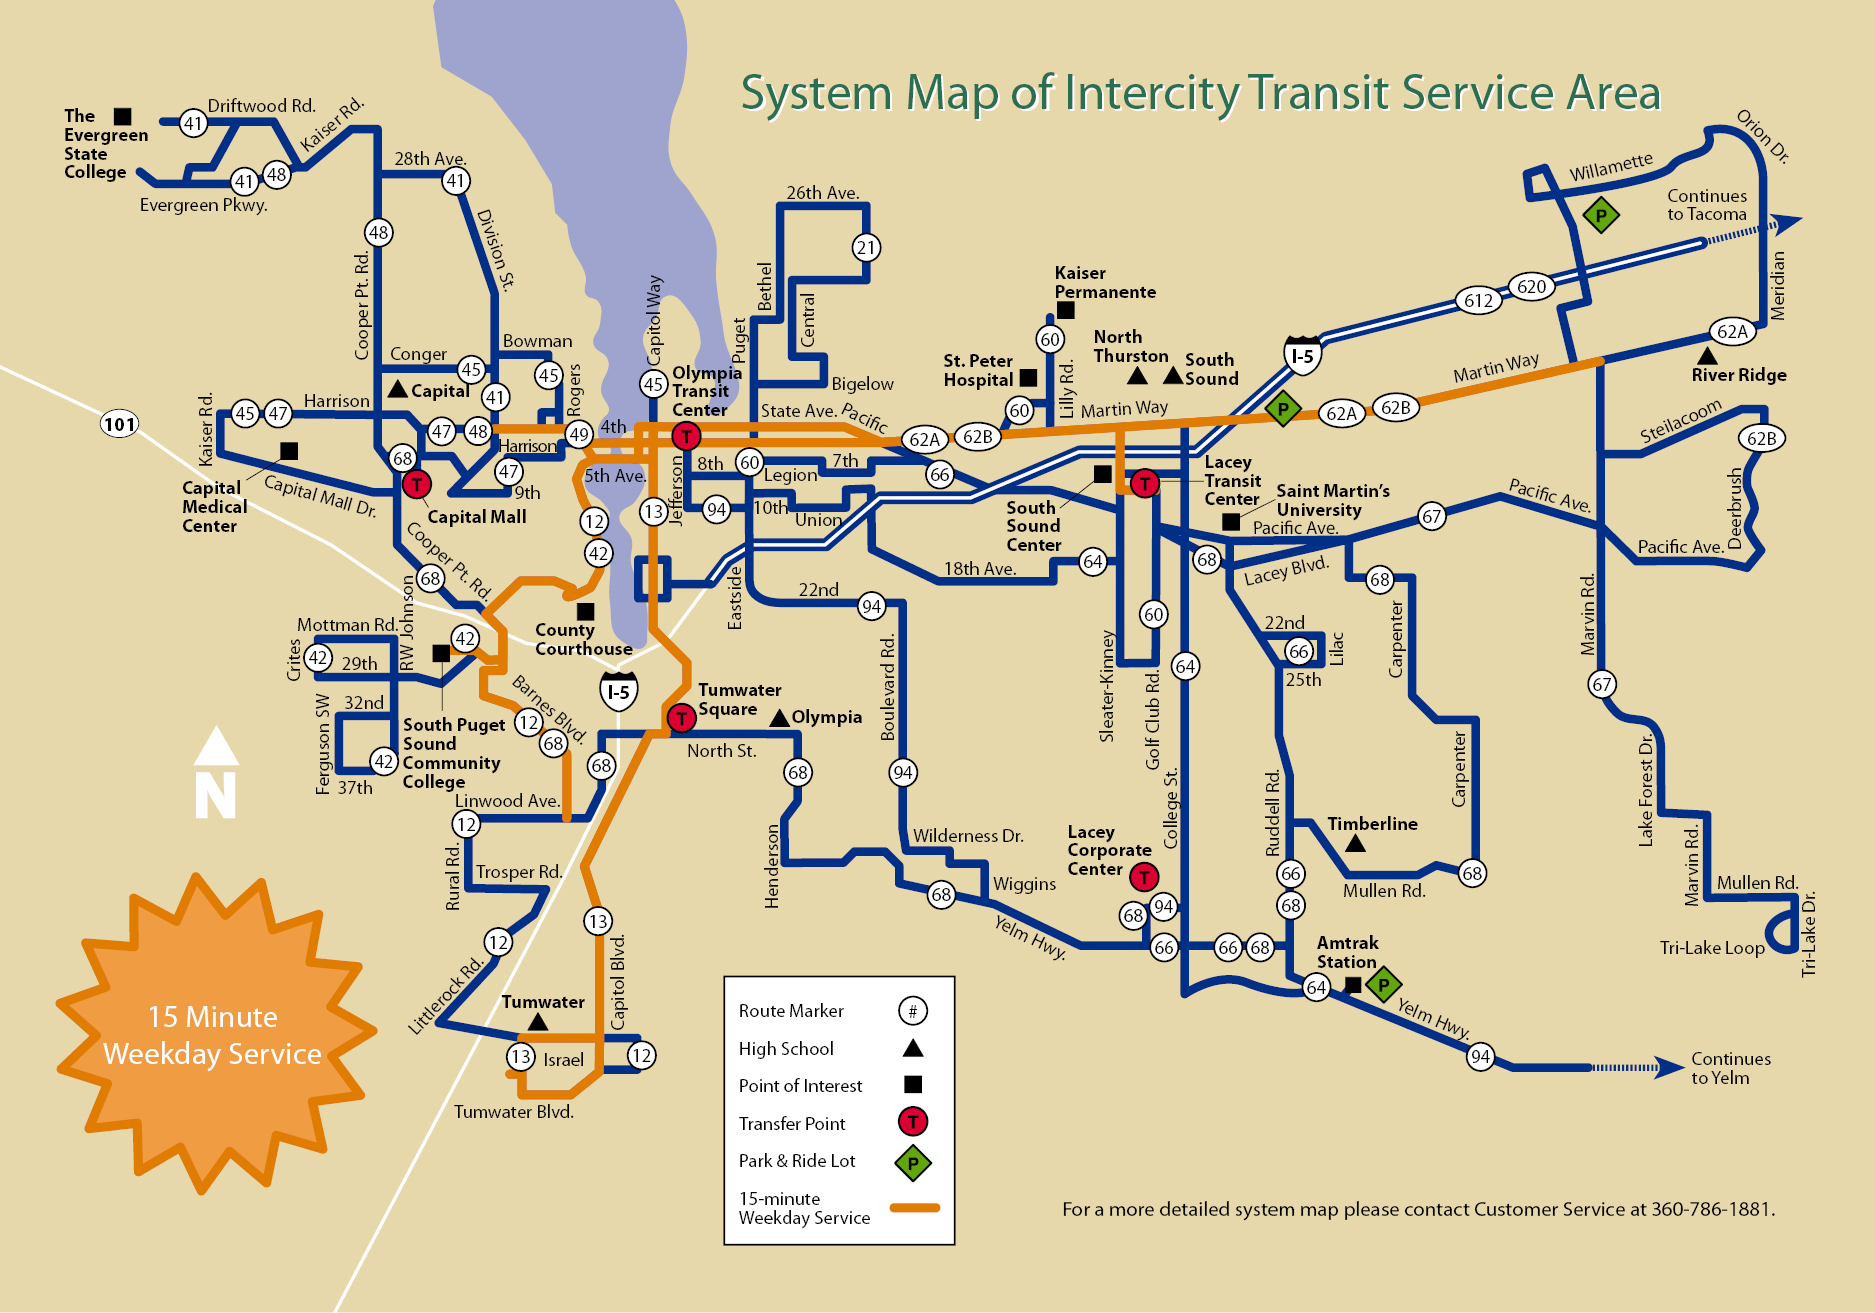 System Map of Intercity Transit Service Area